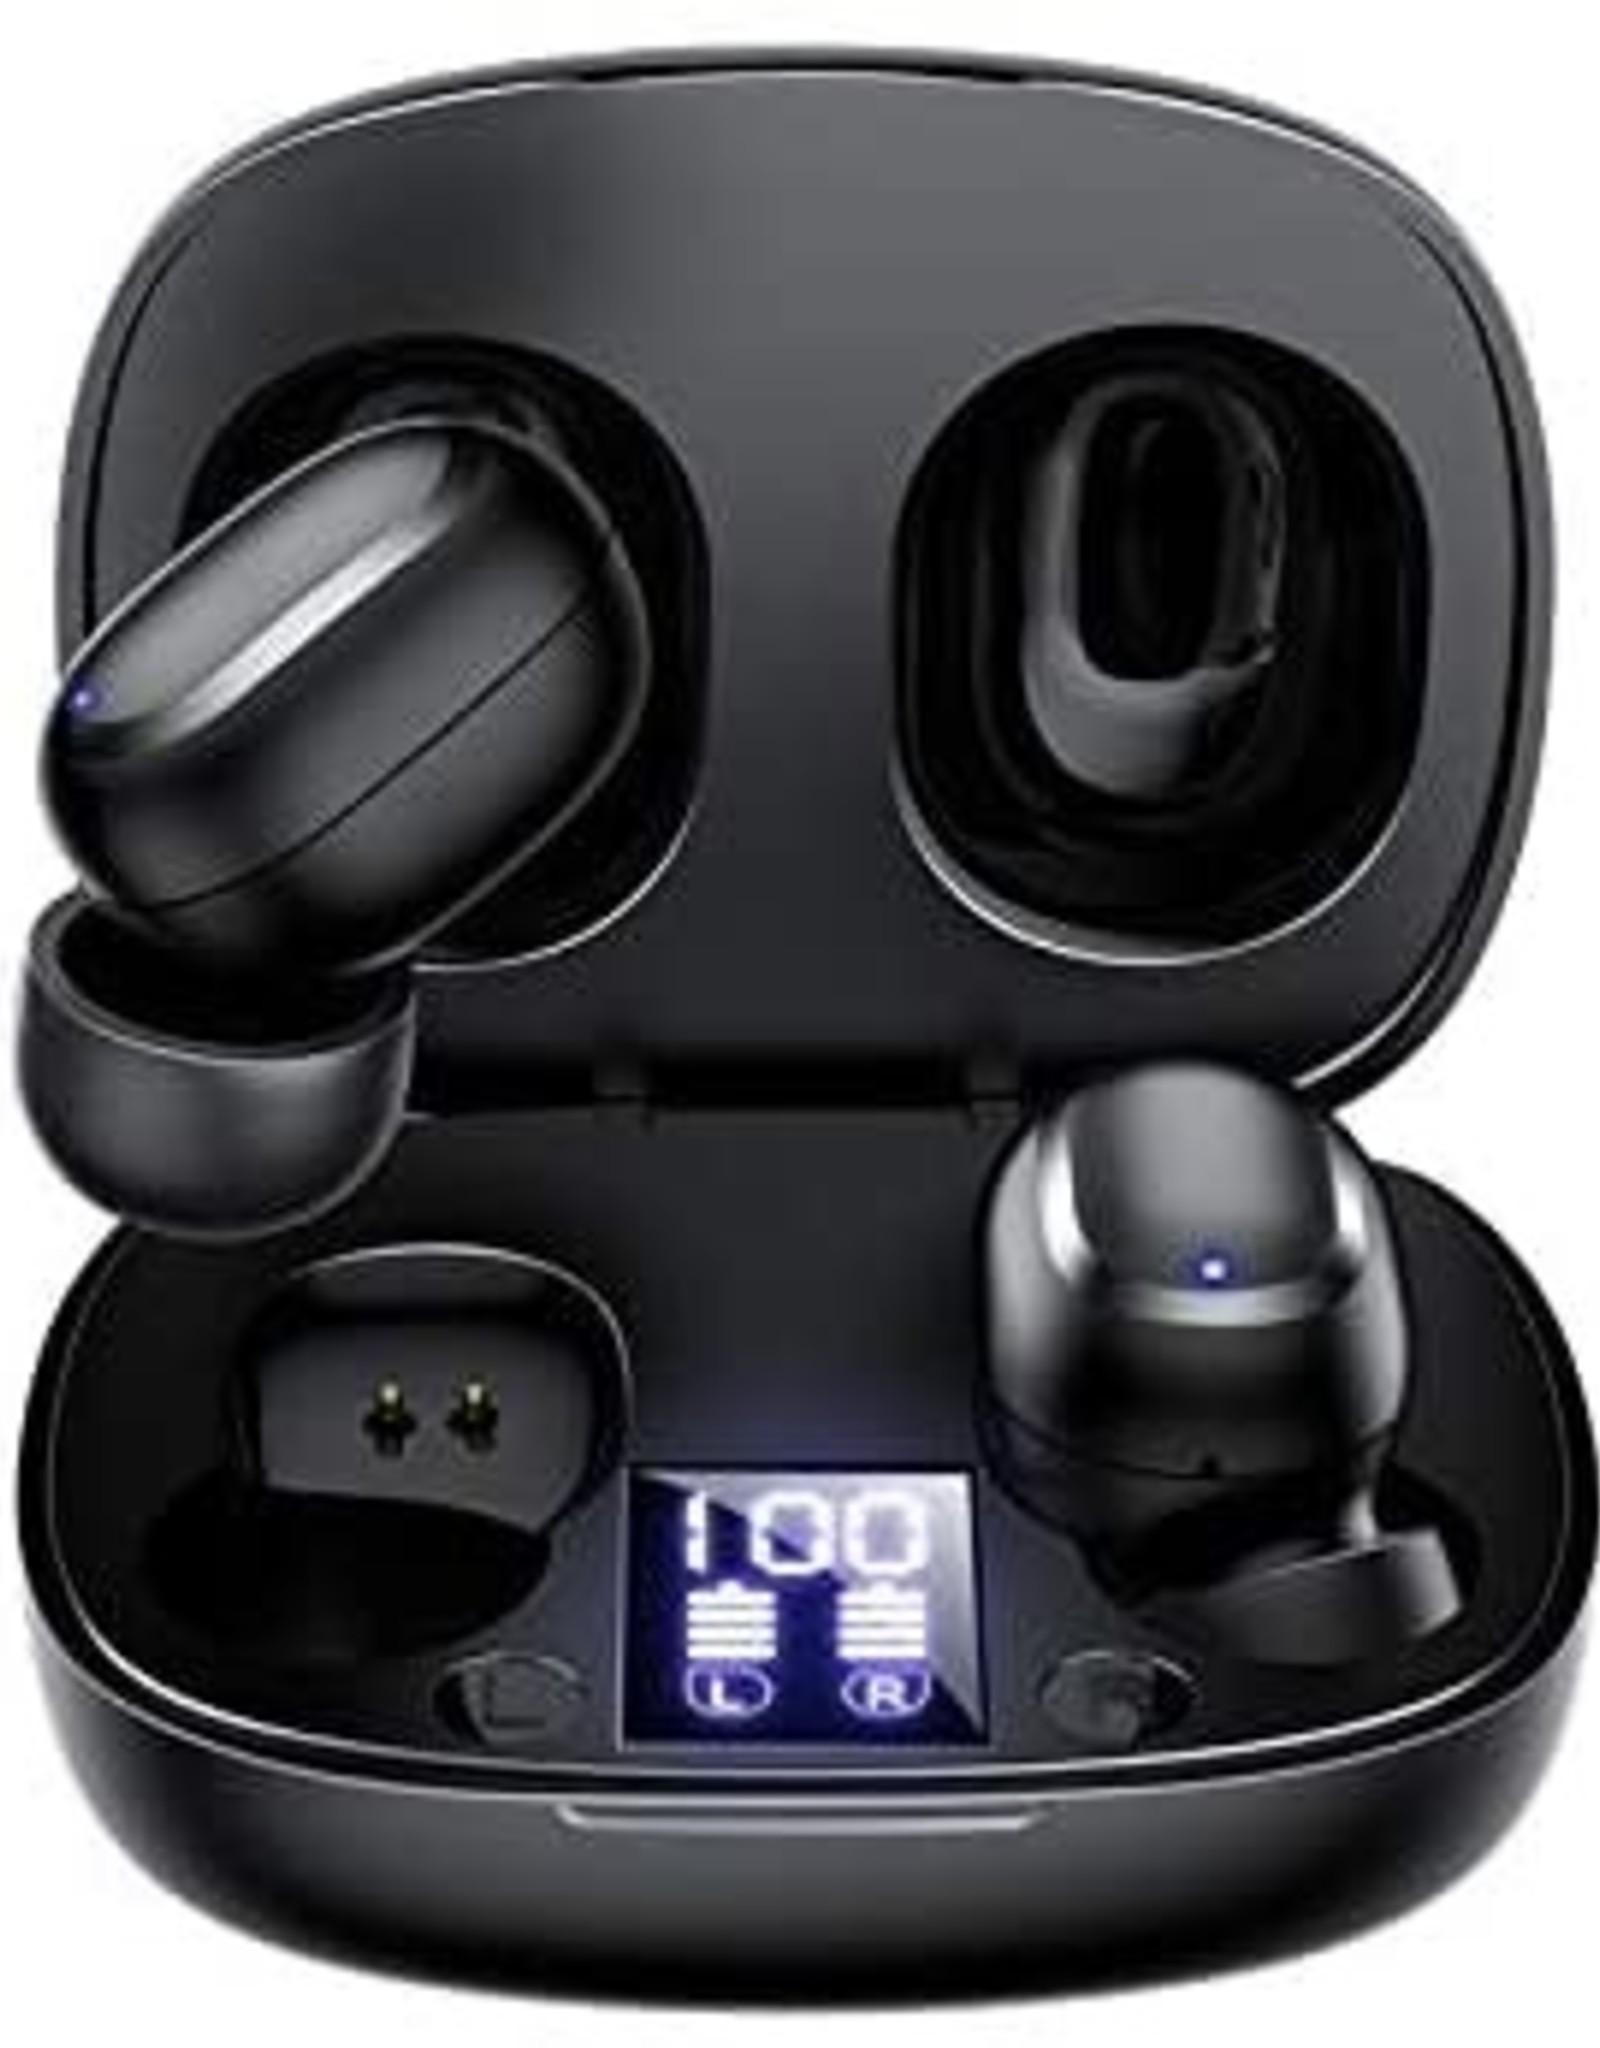 Joyroom TWS Wireless Earphone With Display JR-TL5